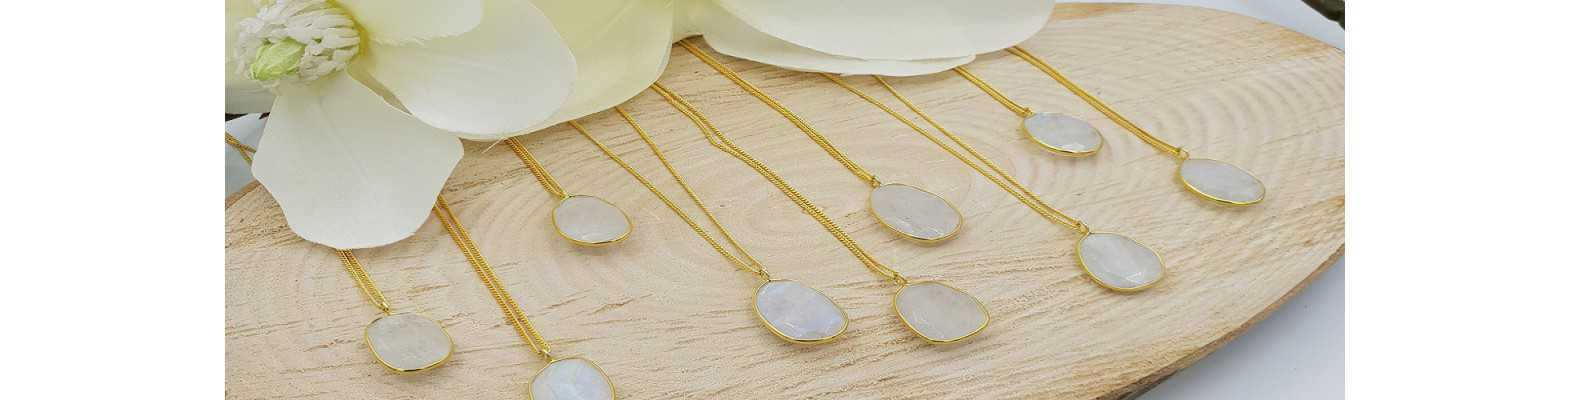 Gold Plated Gemstone Necklaces